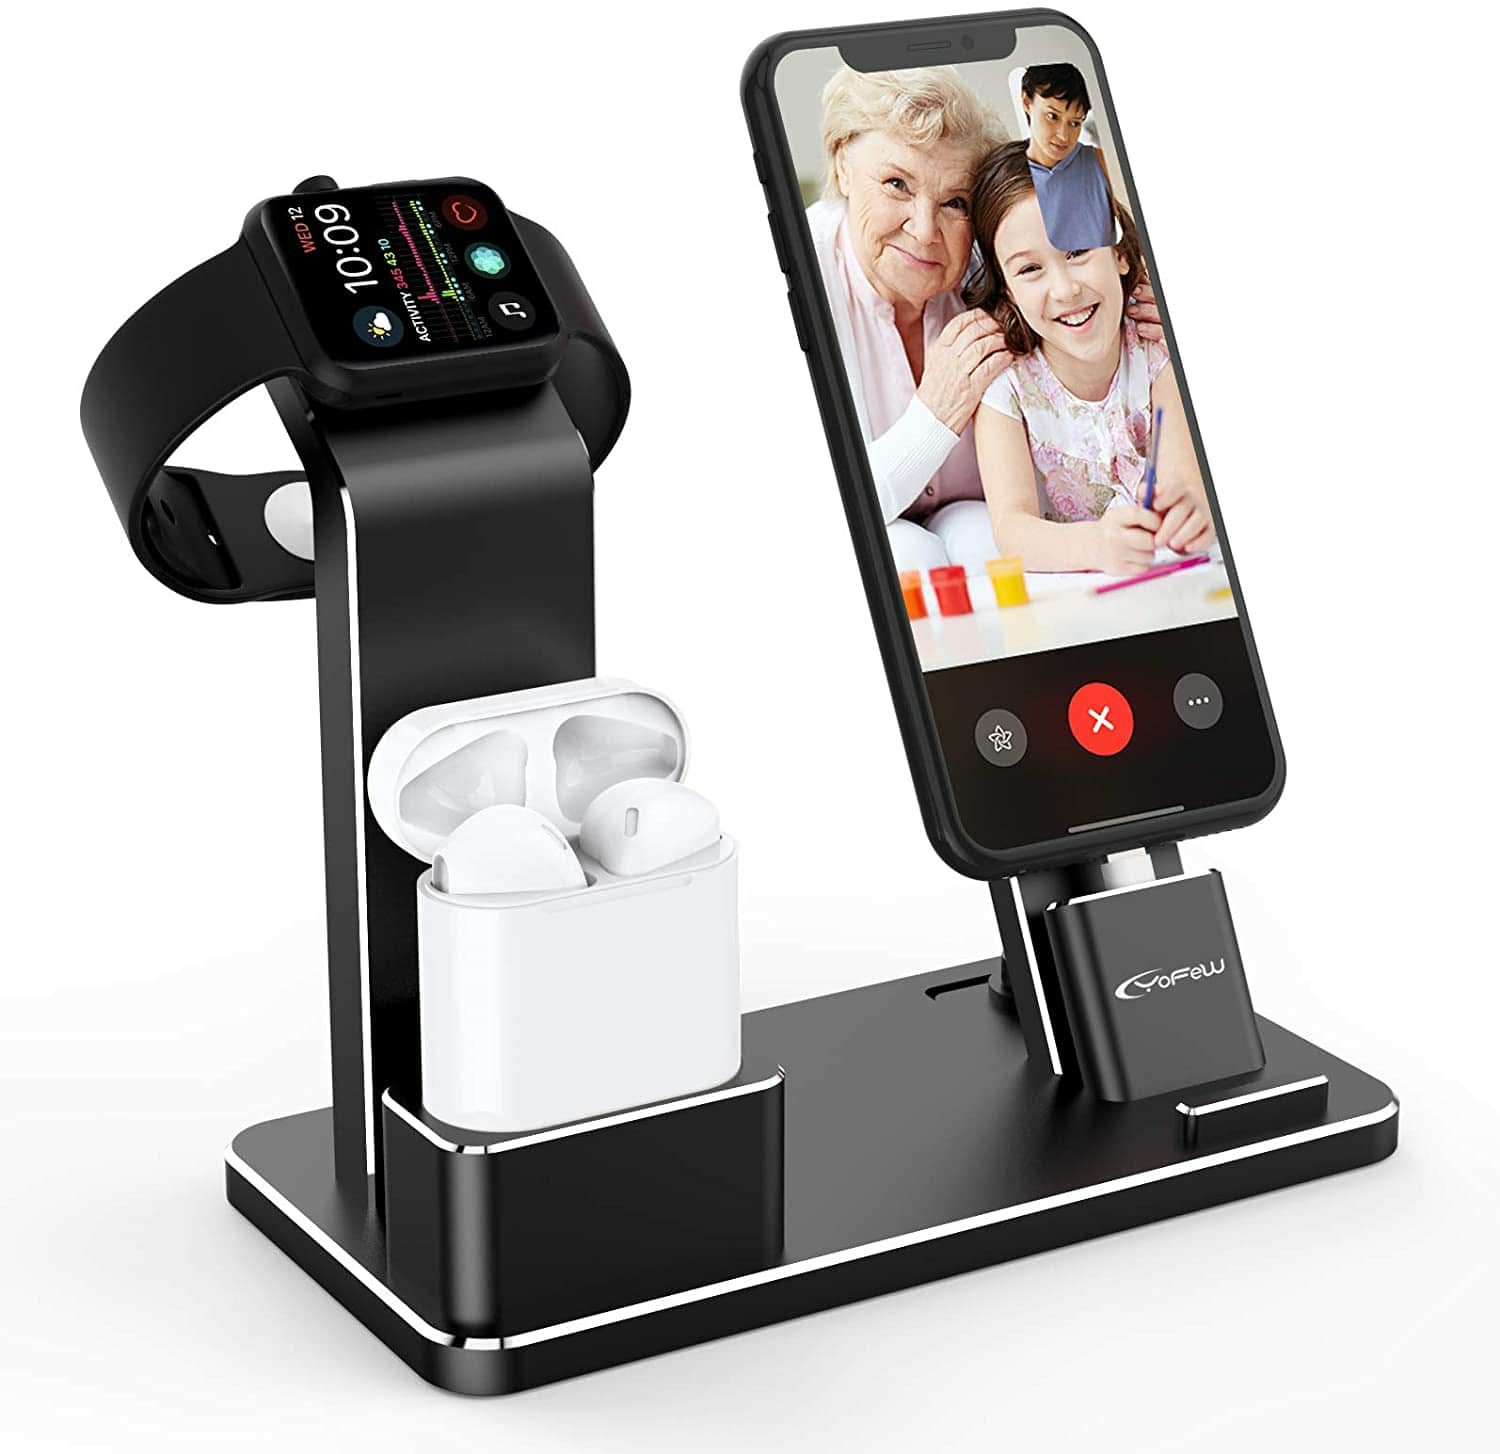 Amazon.com: YoFeW Charging Stand Aluminum Dock Station Compatible for iWatch Apple Watch Series 4/3 / 2/1/ AirPods/AirPods Pro/iPhone X/XS/XS Ma /8 / $16.99